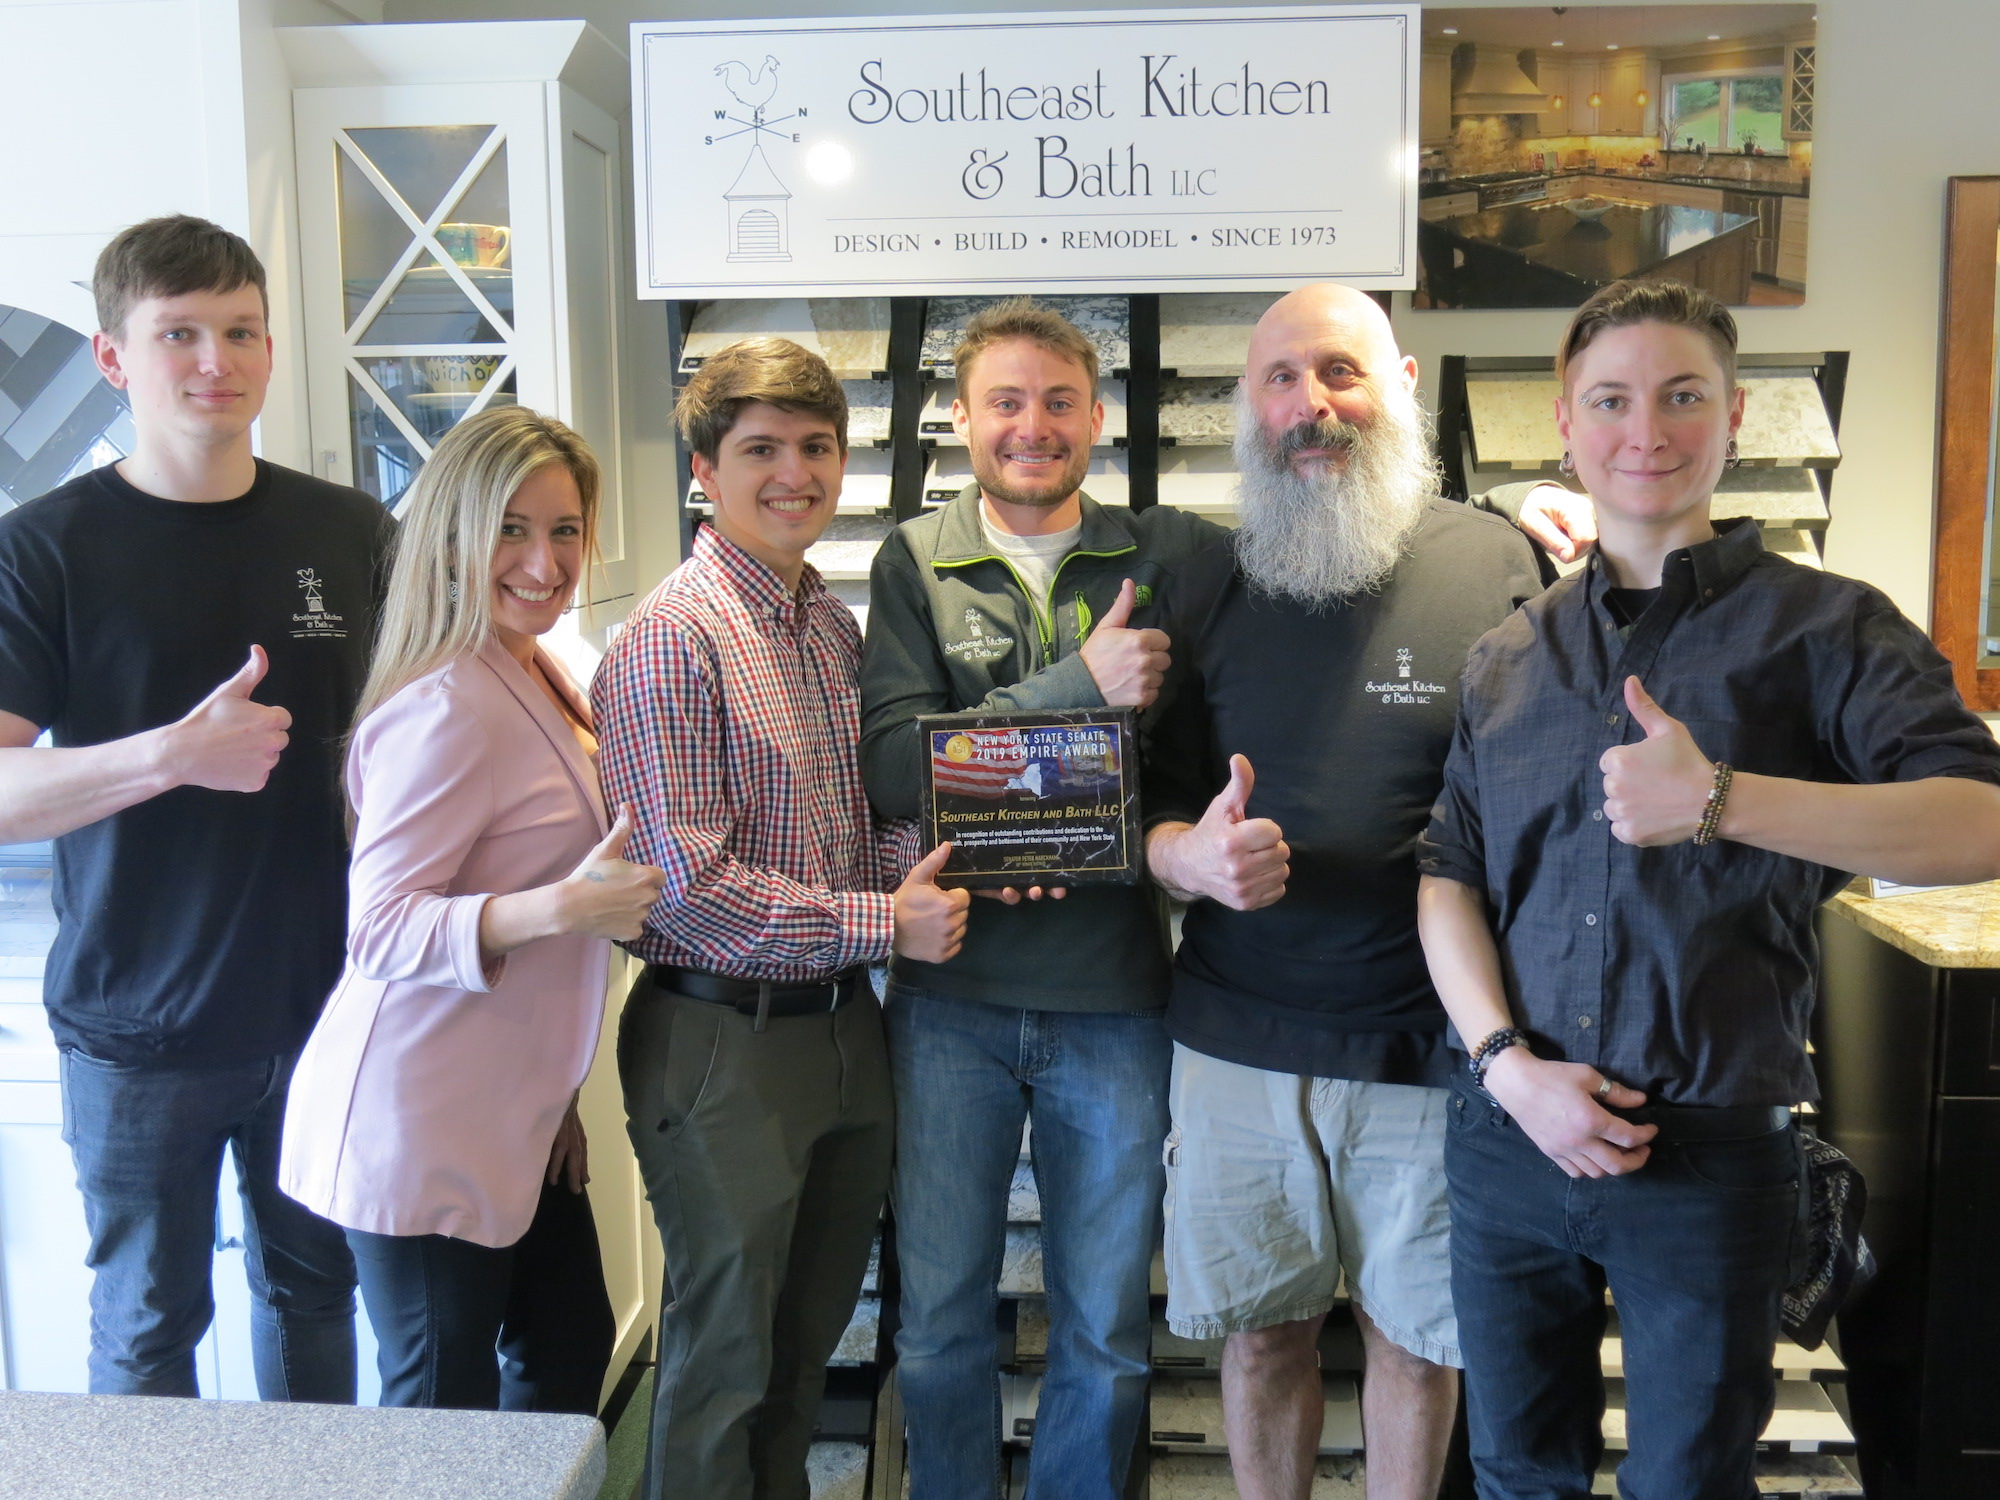 Southeast Kitchen & Bath Receives a NYS Senate 2019 Empire Award